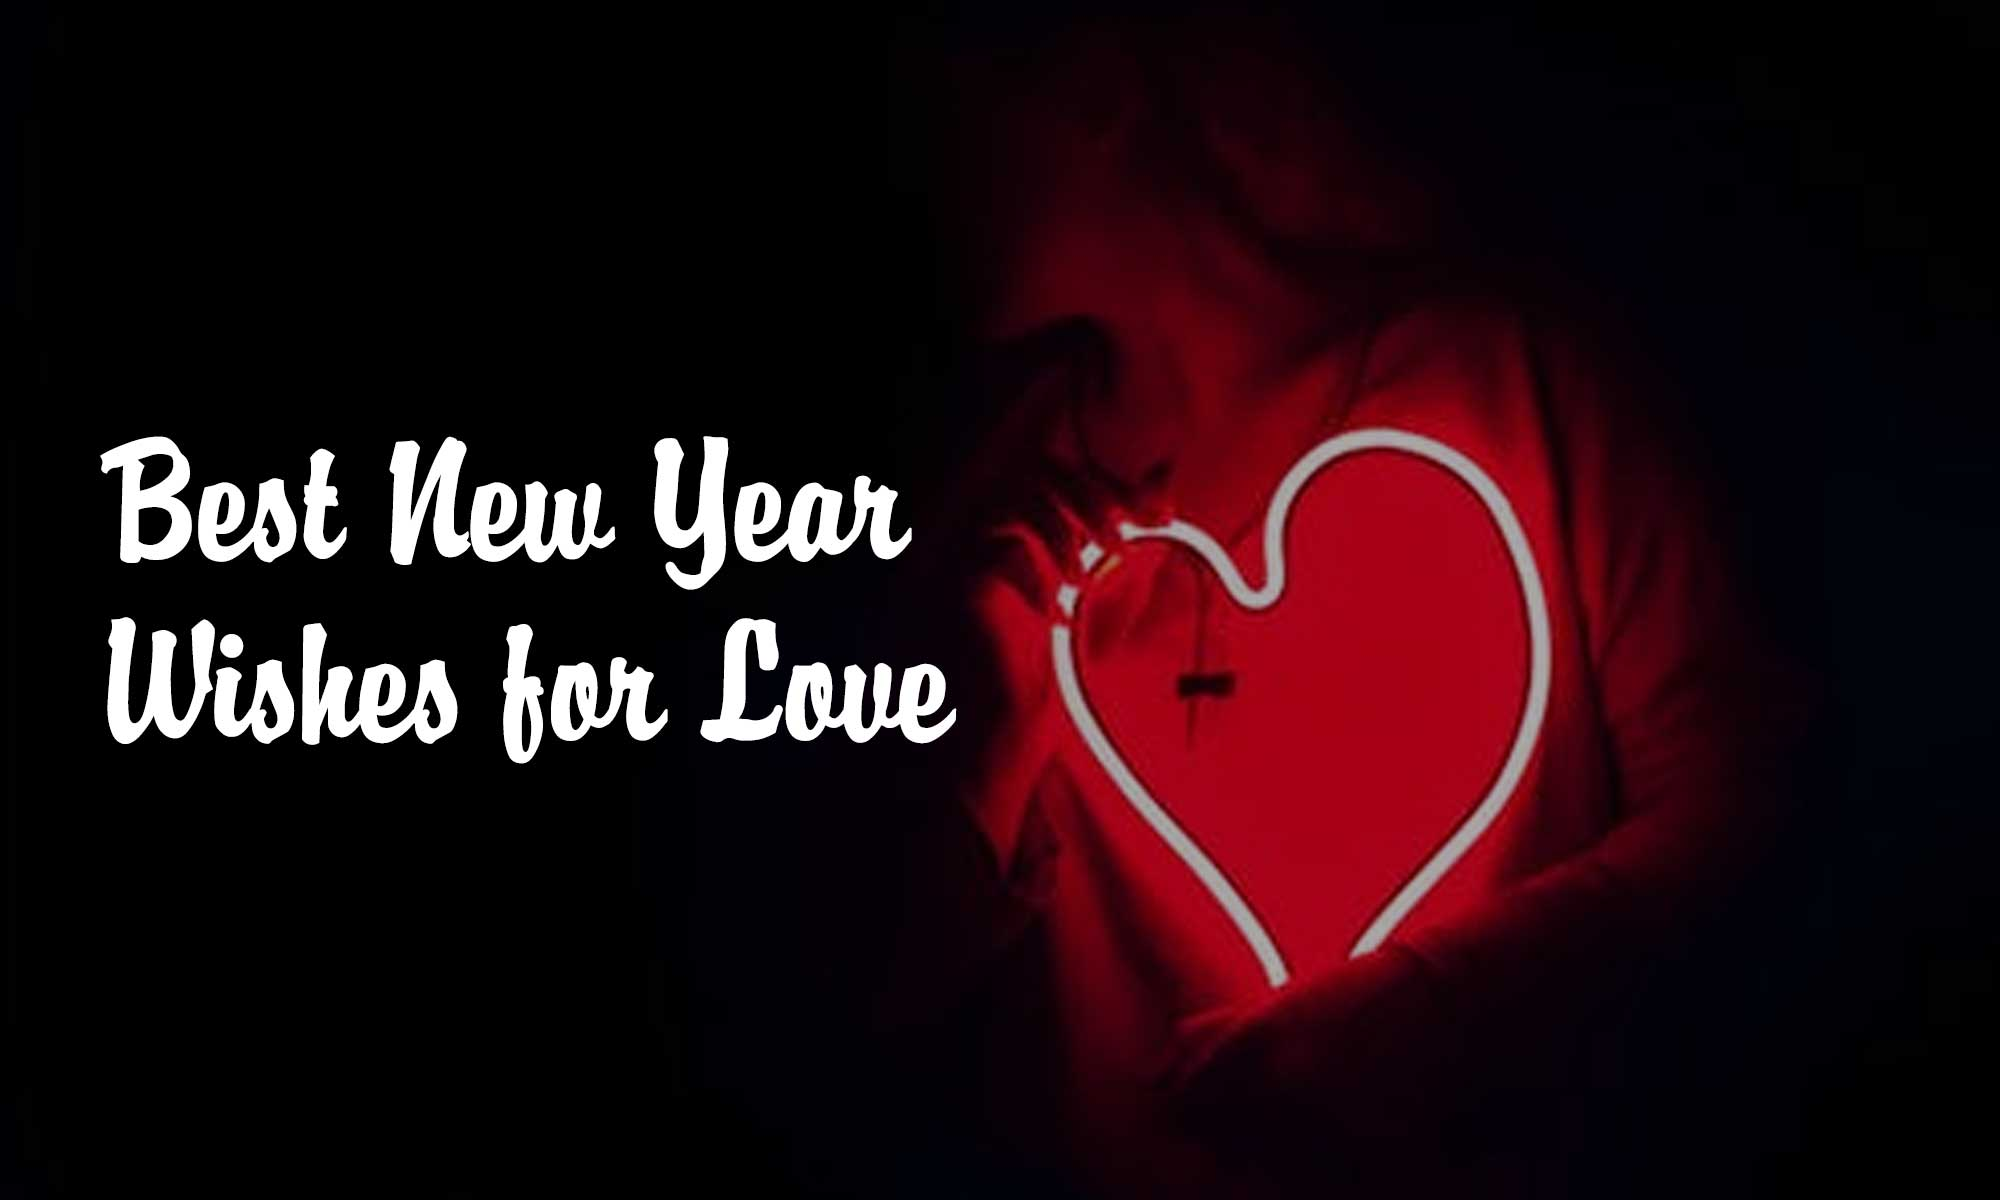 New-Year-Wishes-for-Loved-one